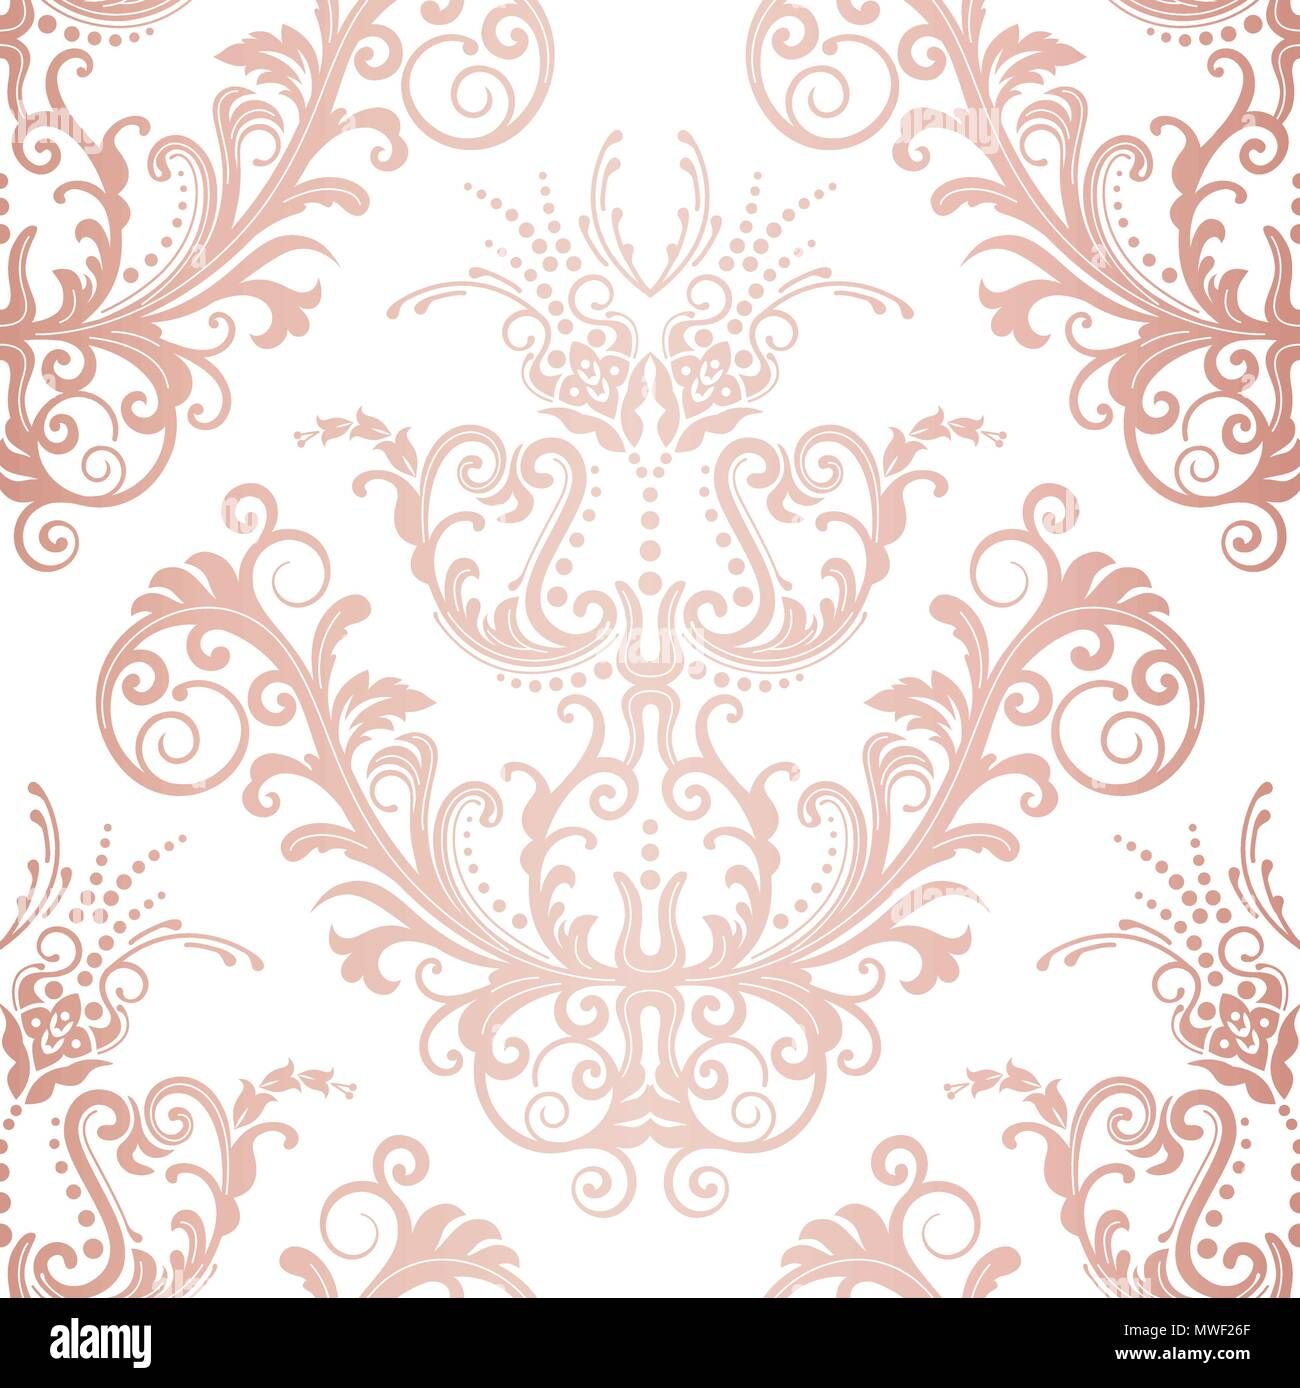 Seamless Rose Gold Floral Vintage Wallpaper Pattern This Image Is